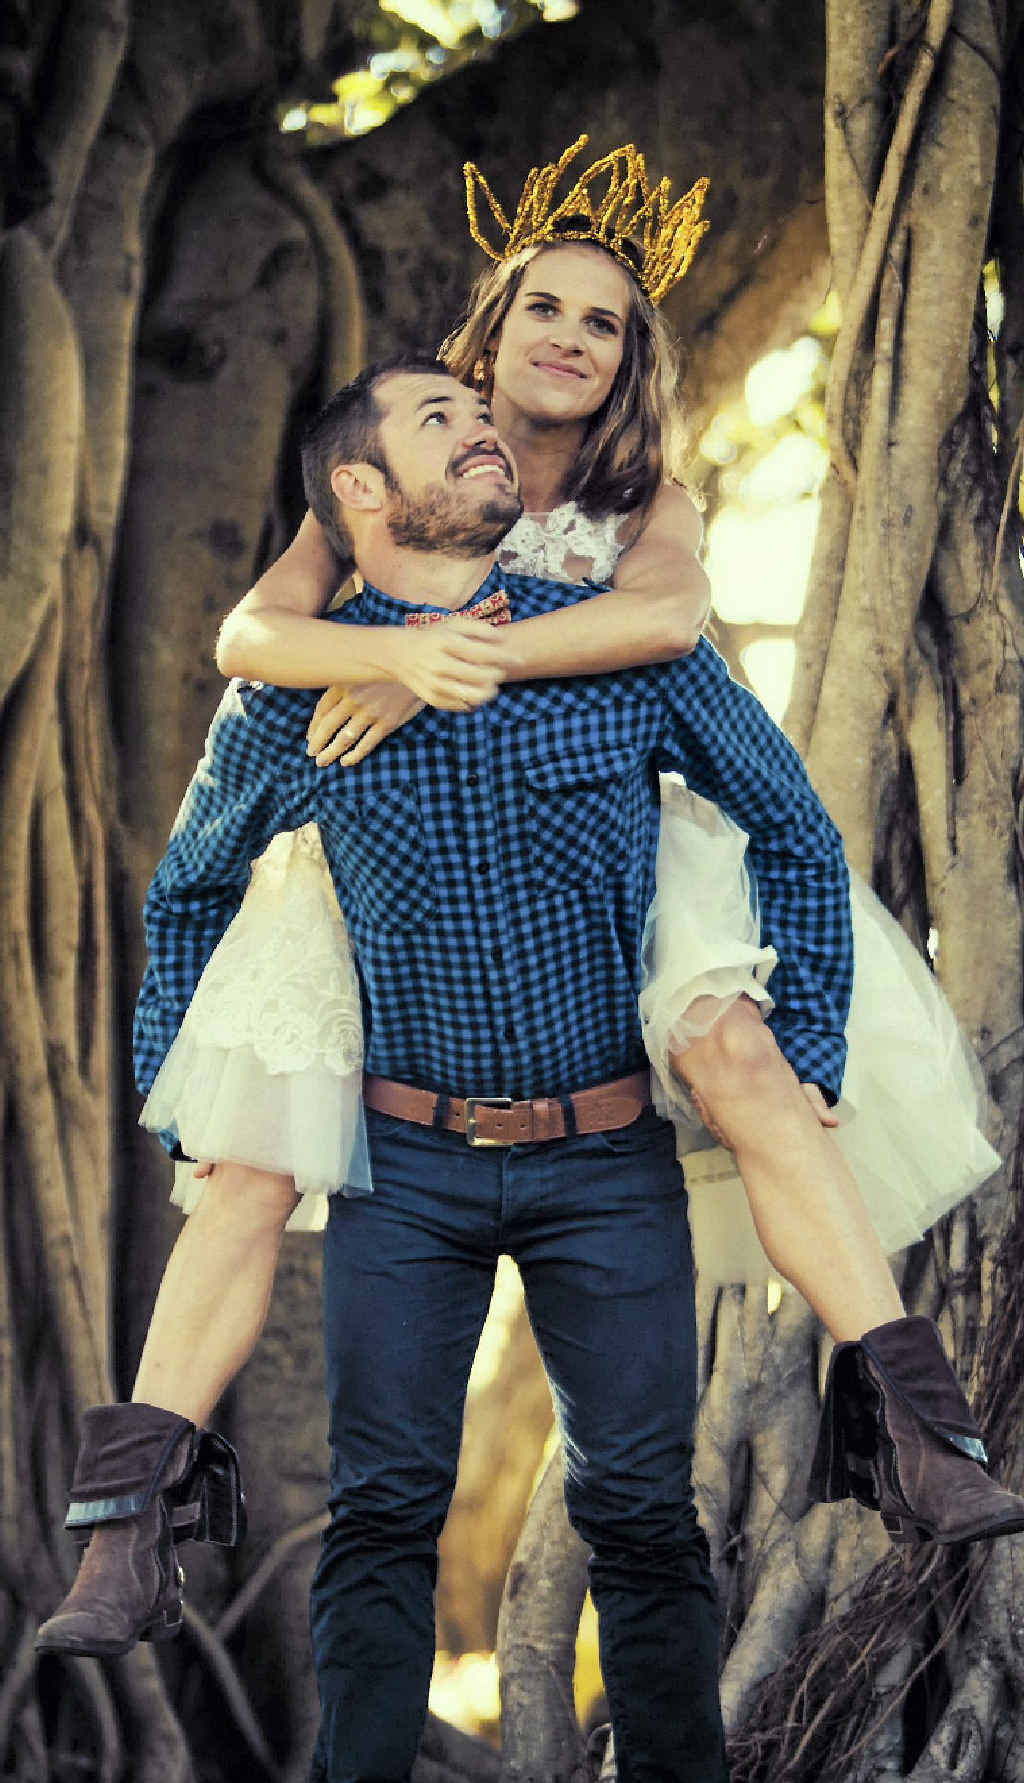 Mia Smith will marry Eben Rainey in New Zealand in a month's time.